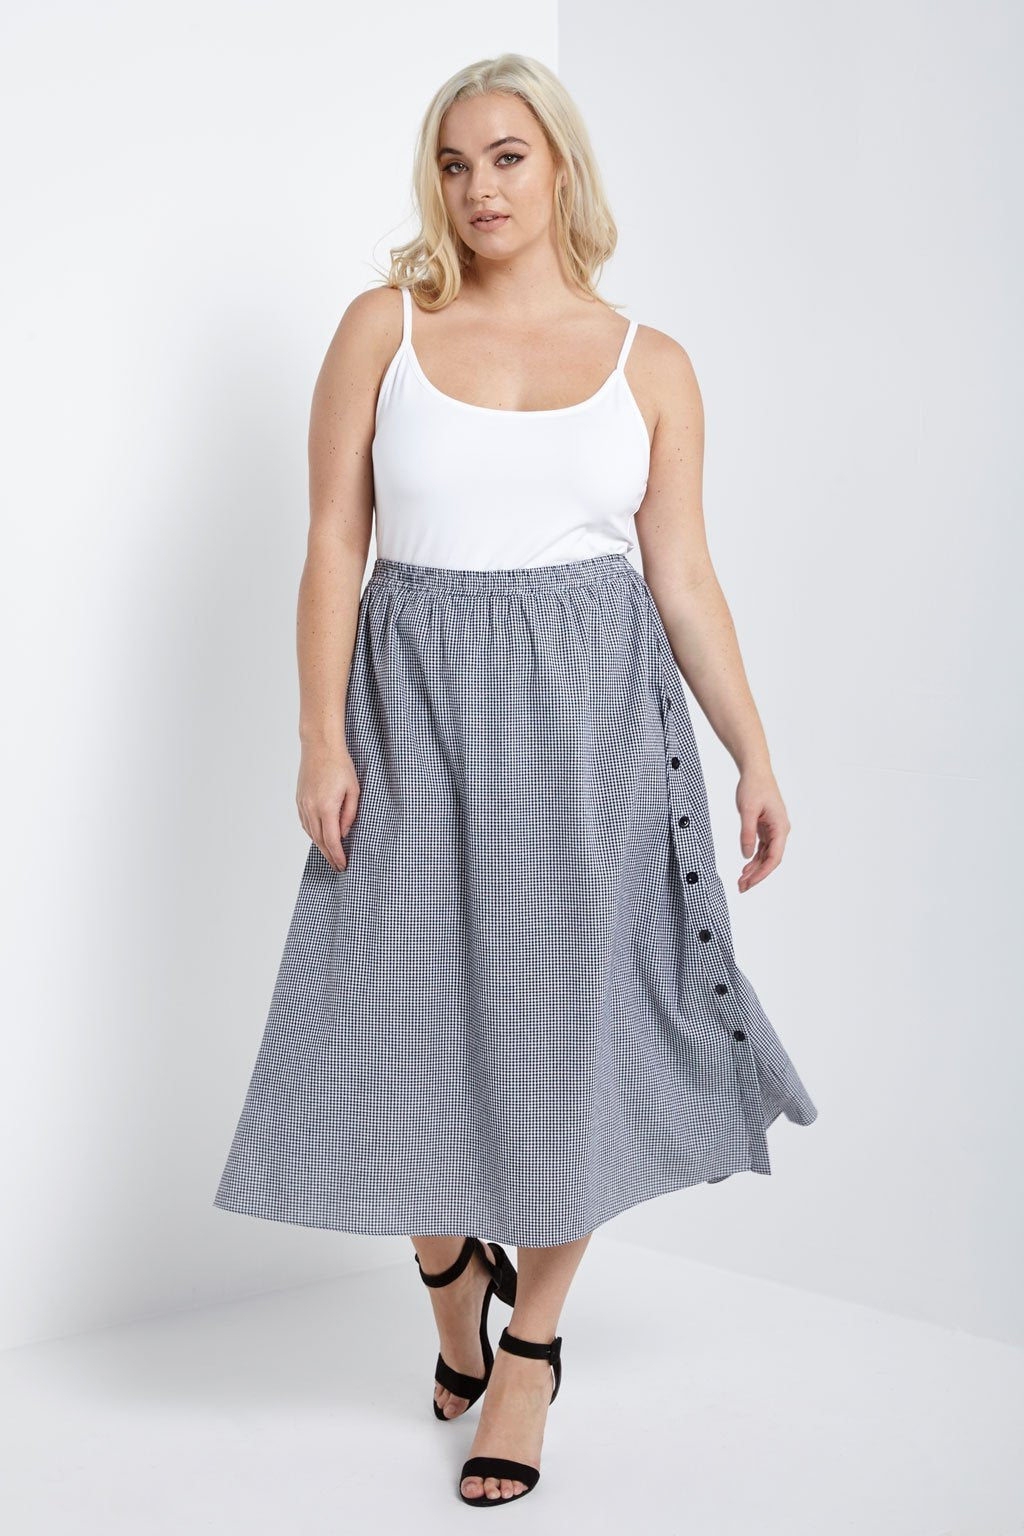 Poshsquare Plus 1XL / Black White Gingham Gingham Side Button Midi Skirt Plus Size